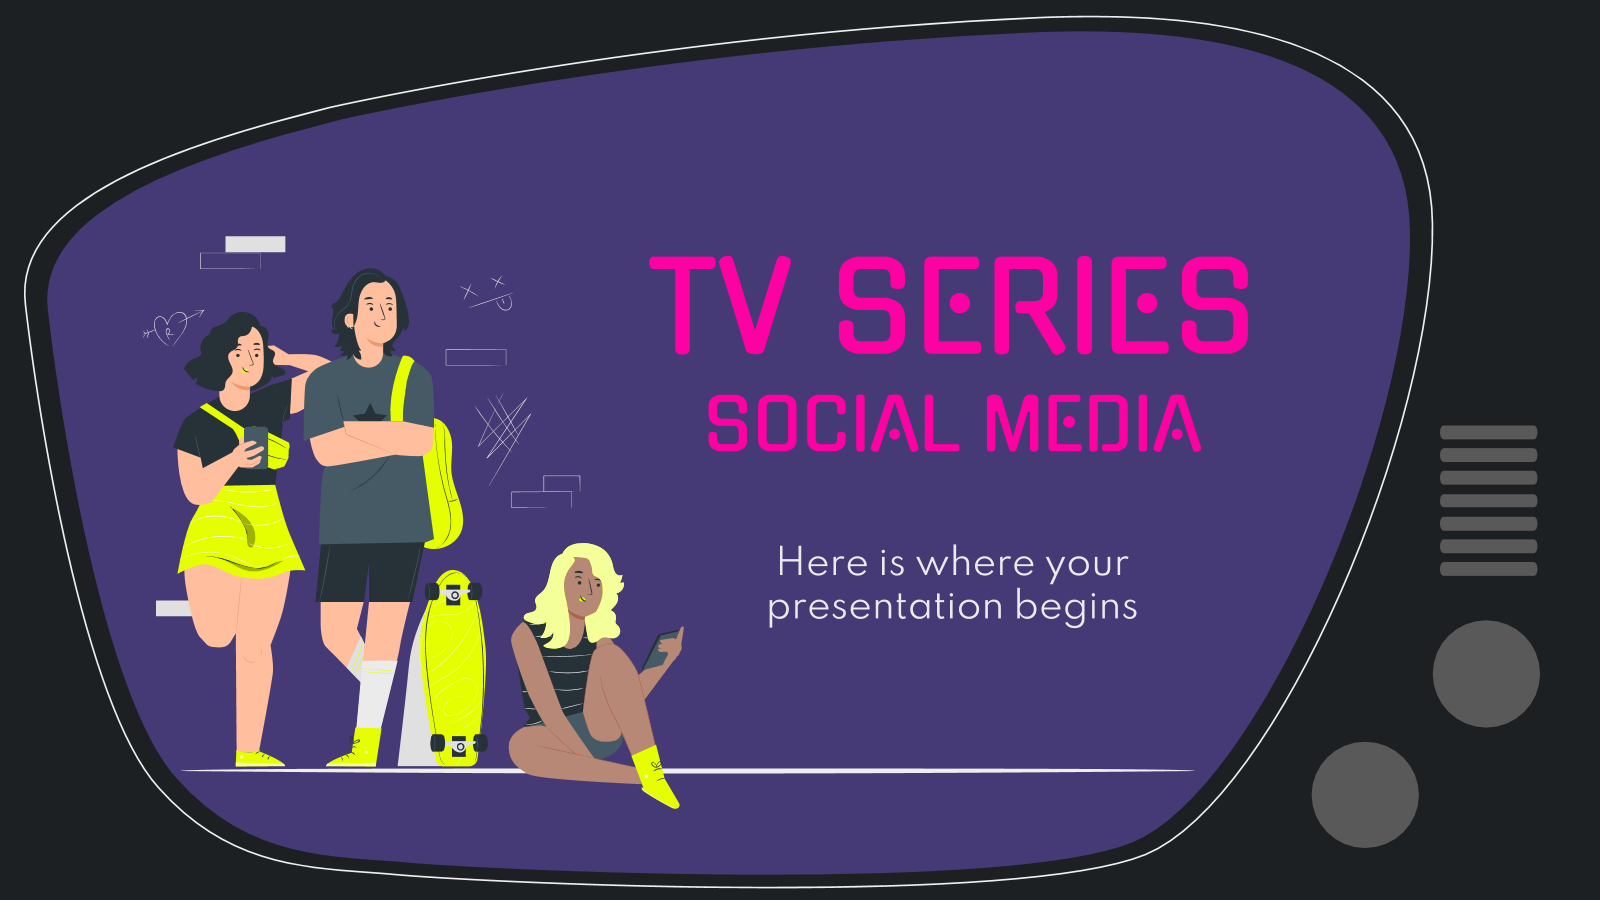 TV Series Social Media presentation template